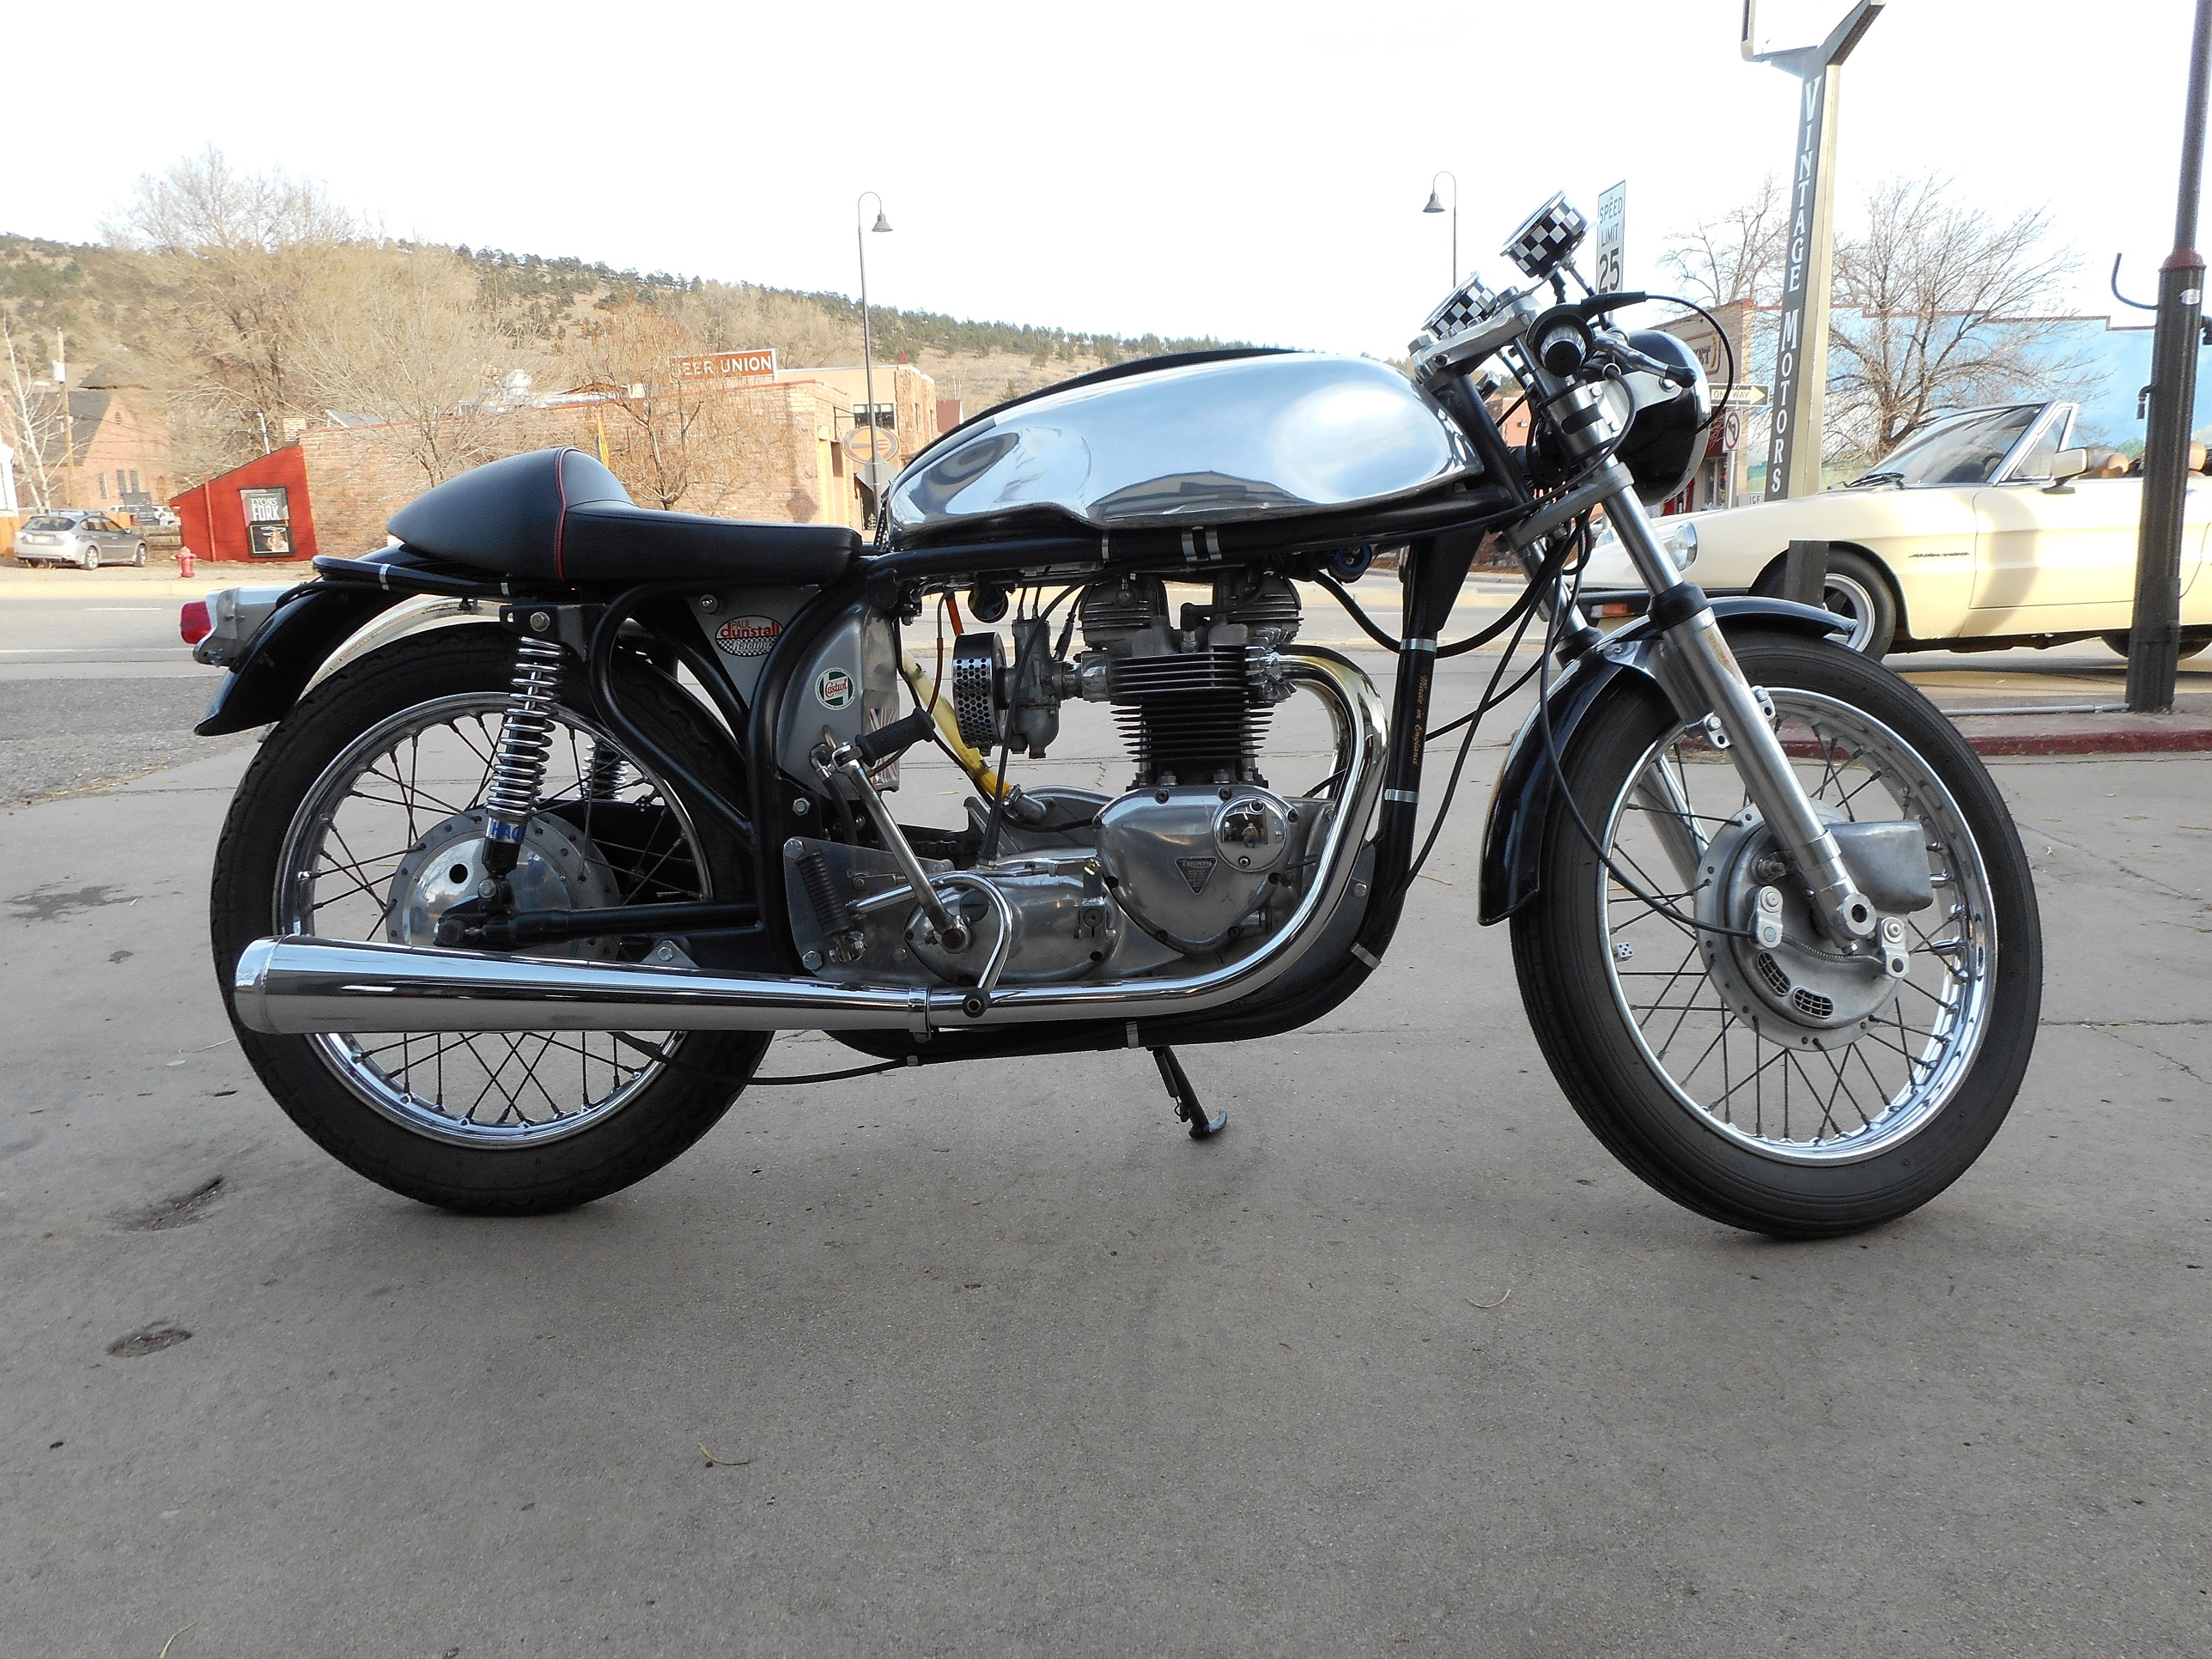 1962 Triton Vintage Cafe Racer Motorcycle Sold Motors Of Lyons